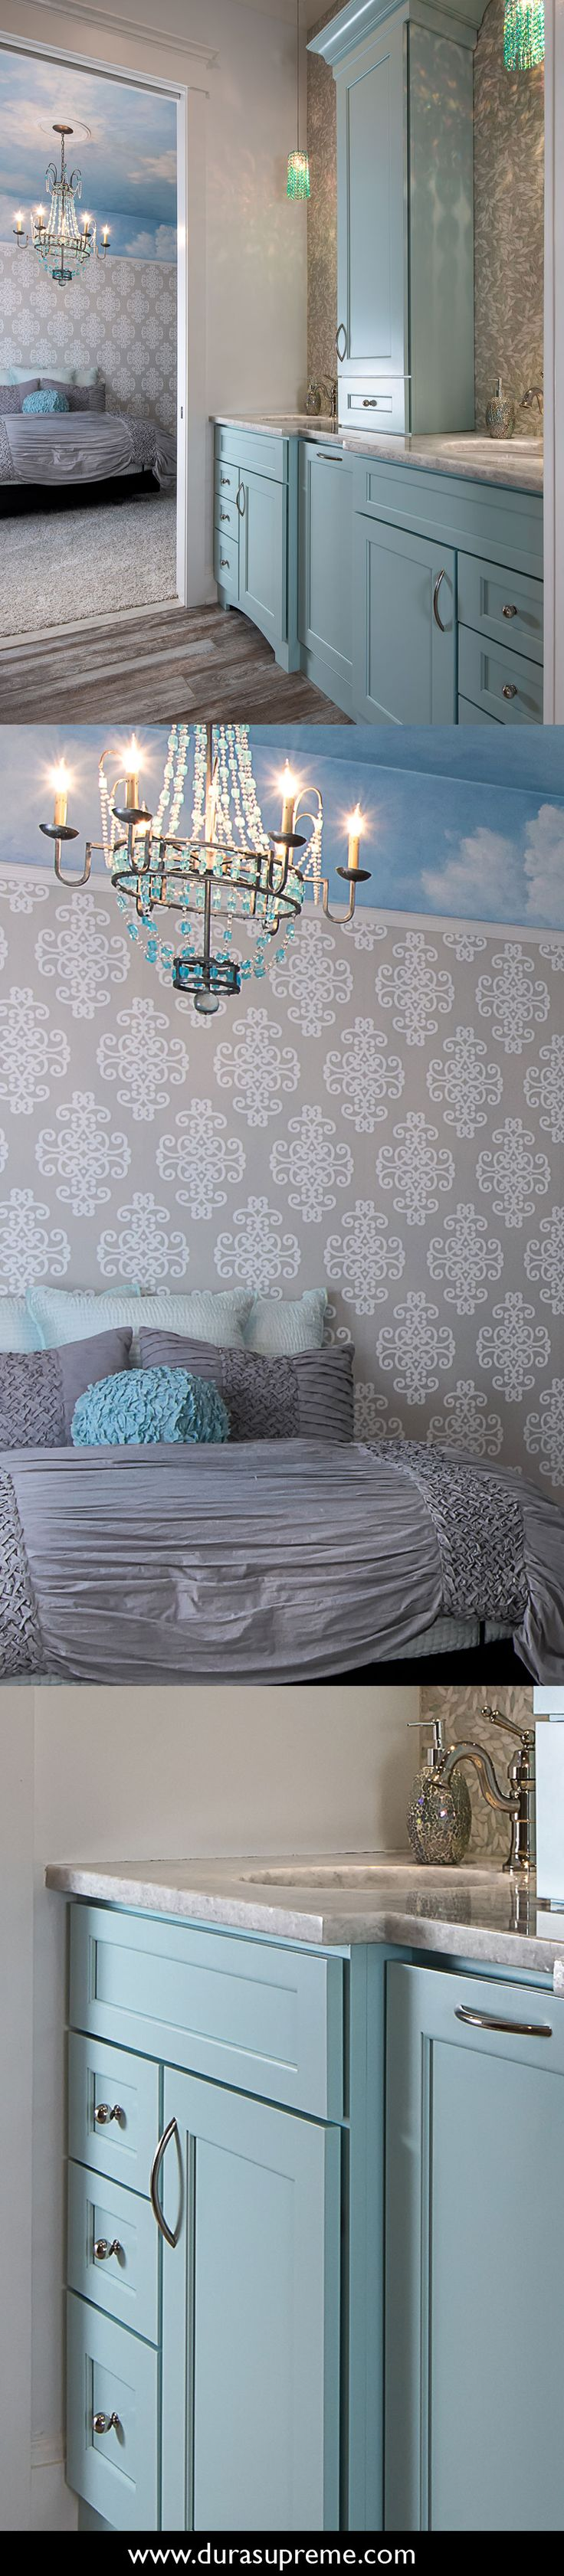 217 Best Shades Of Gray Images On Pinterest Built In